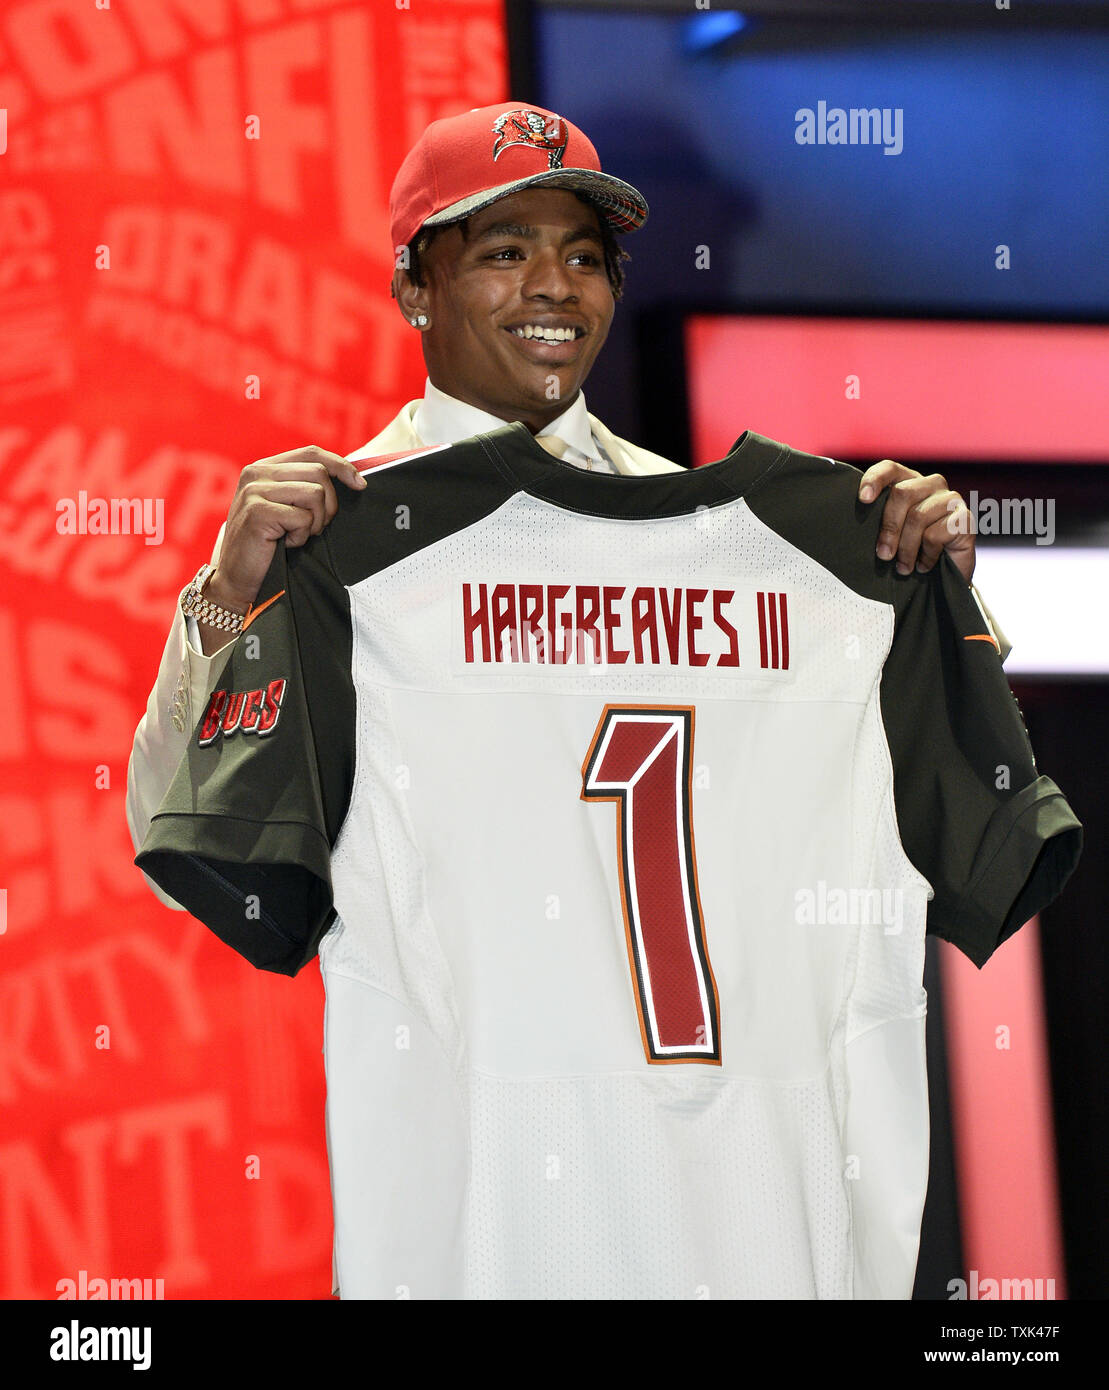 wholesale dealer 9ad6f fcafd Florida cornerback Vernon Hargreaves III holds his jersey ...